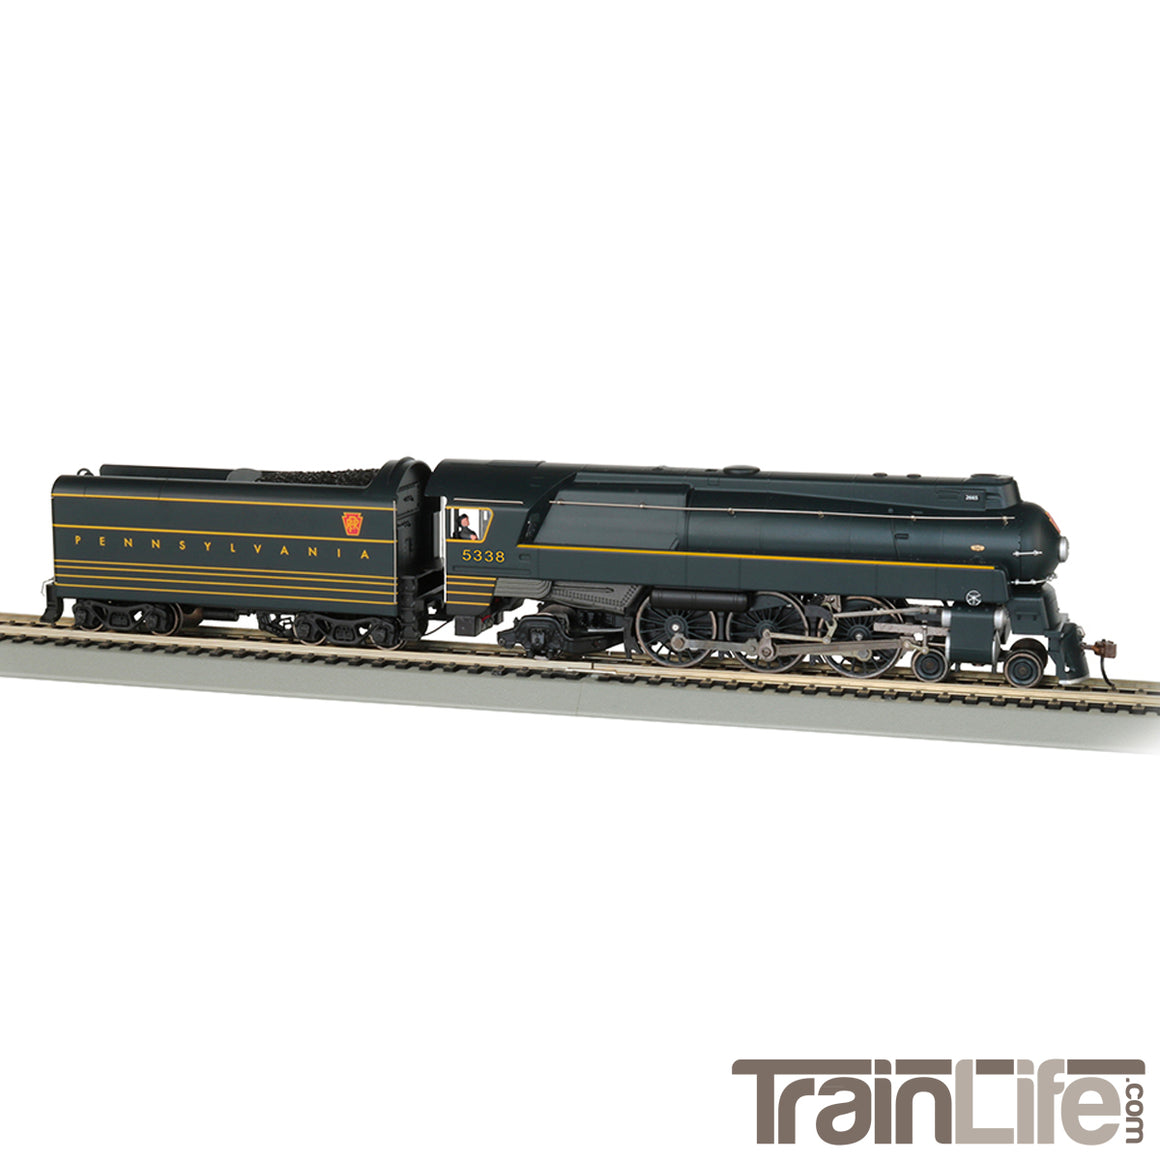 Steam Locomotive Model Trains | HO & N Scale Steam